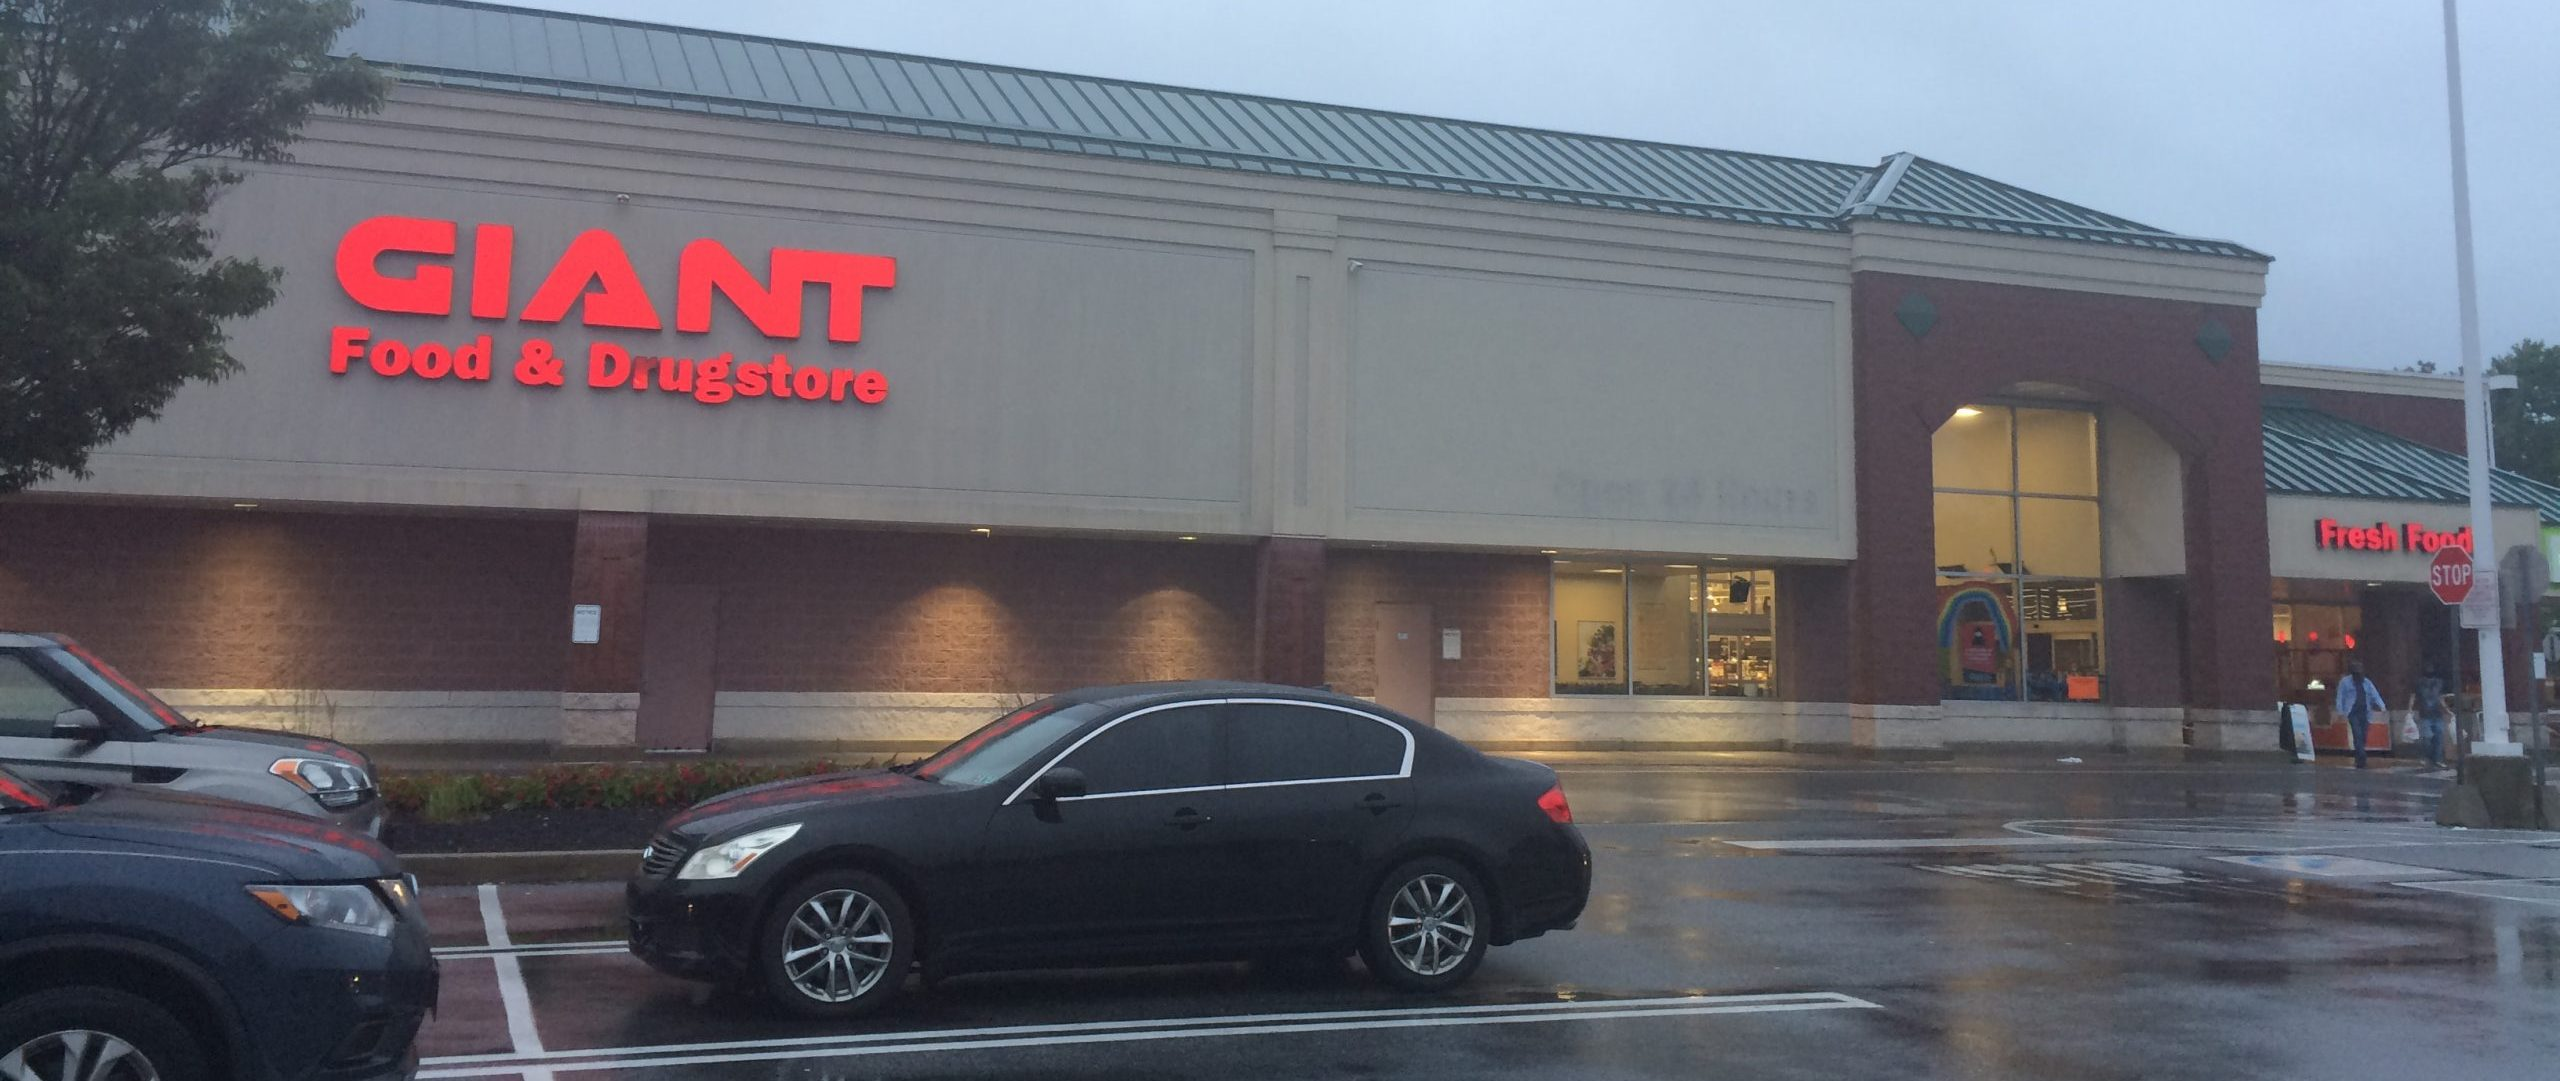 Springfield Giant Store Celebrates 10th Anniversary With Major Renovations